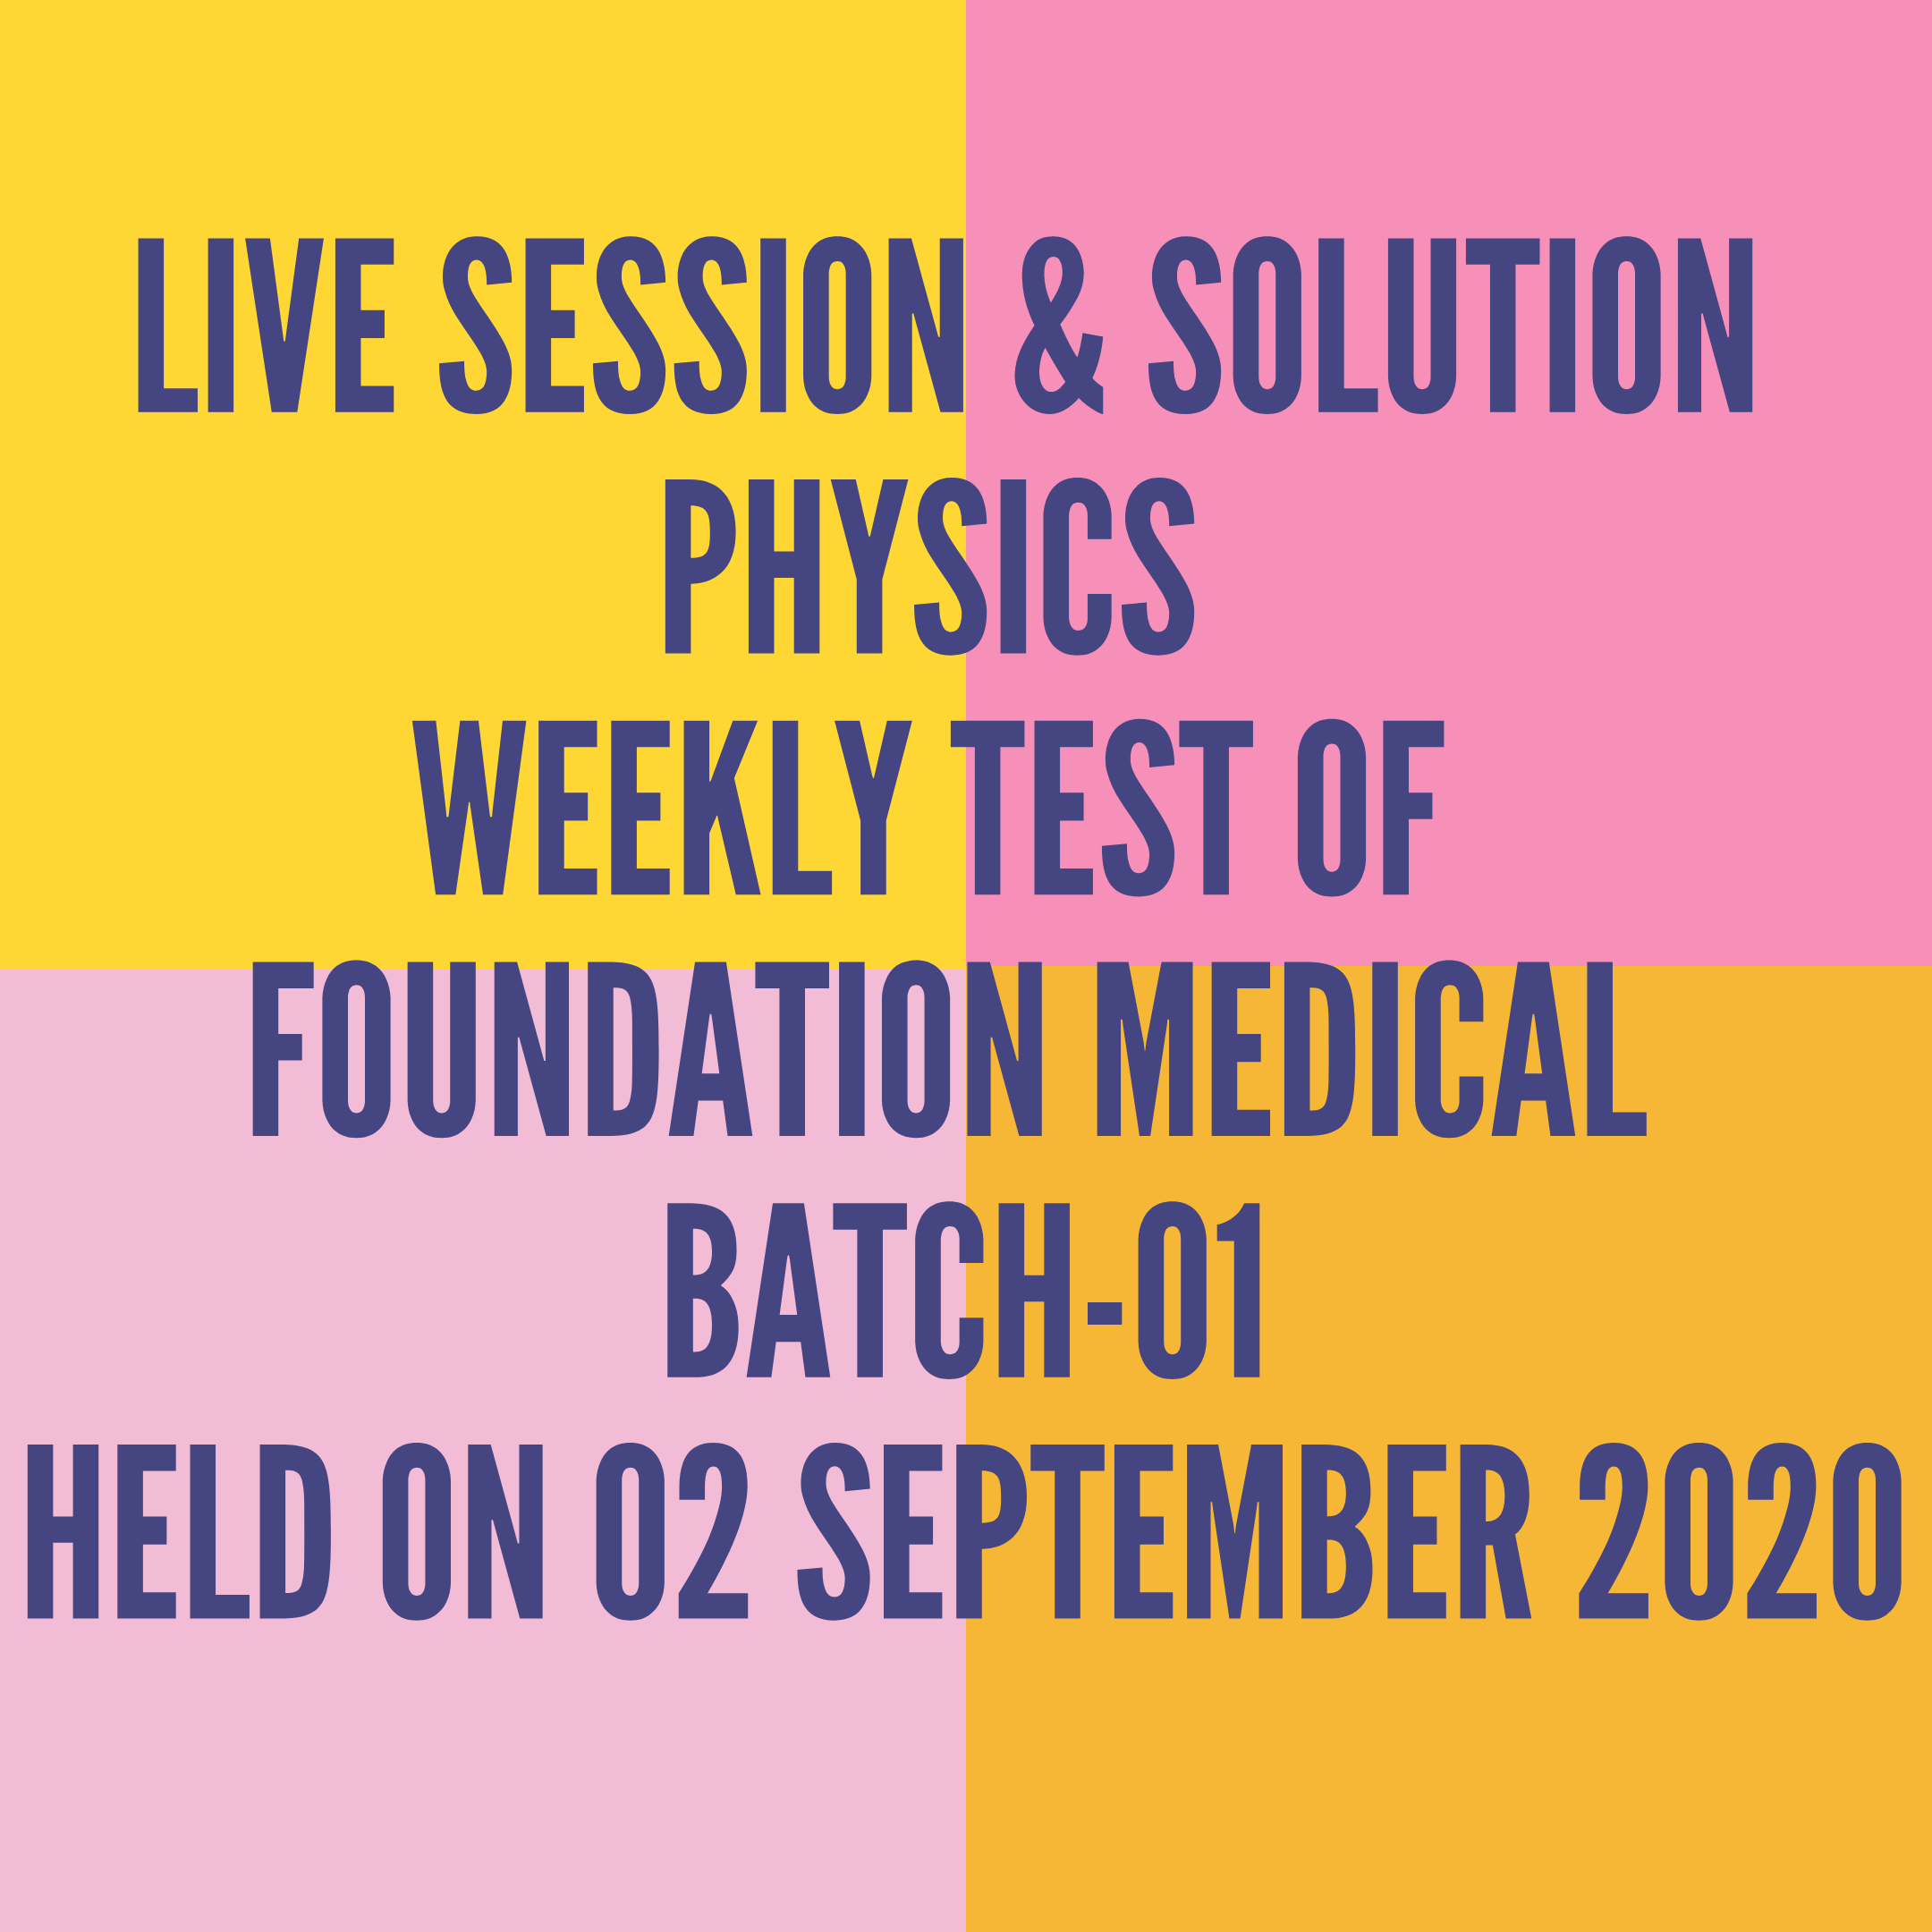 LIVE SESSION & SOLUTION PHYSICS WEEKLY TEST OF FOUNDATION MEDICAL BATCH-01 HELD ON 02ND SEPTEMBER 2020